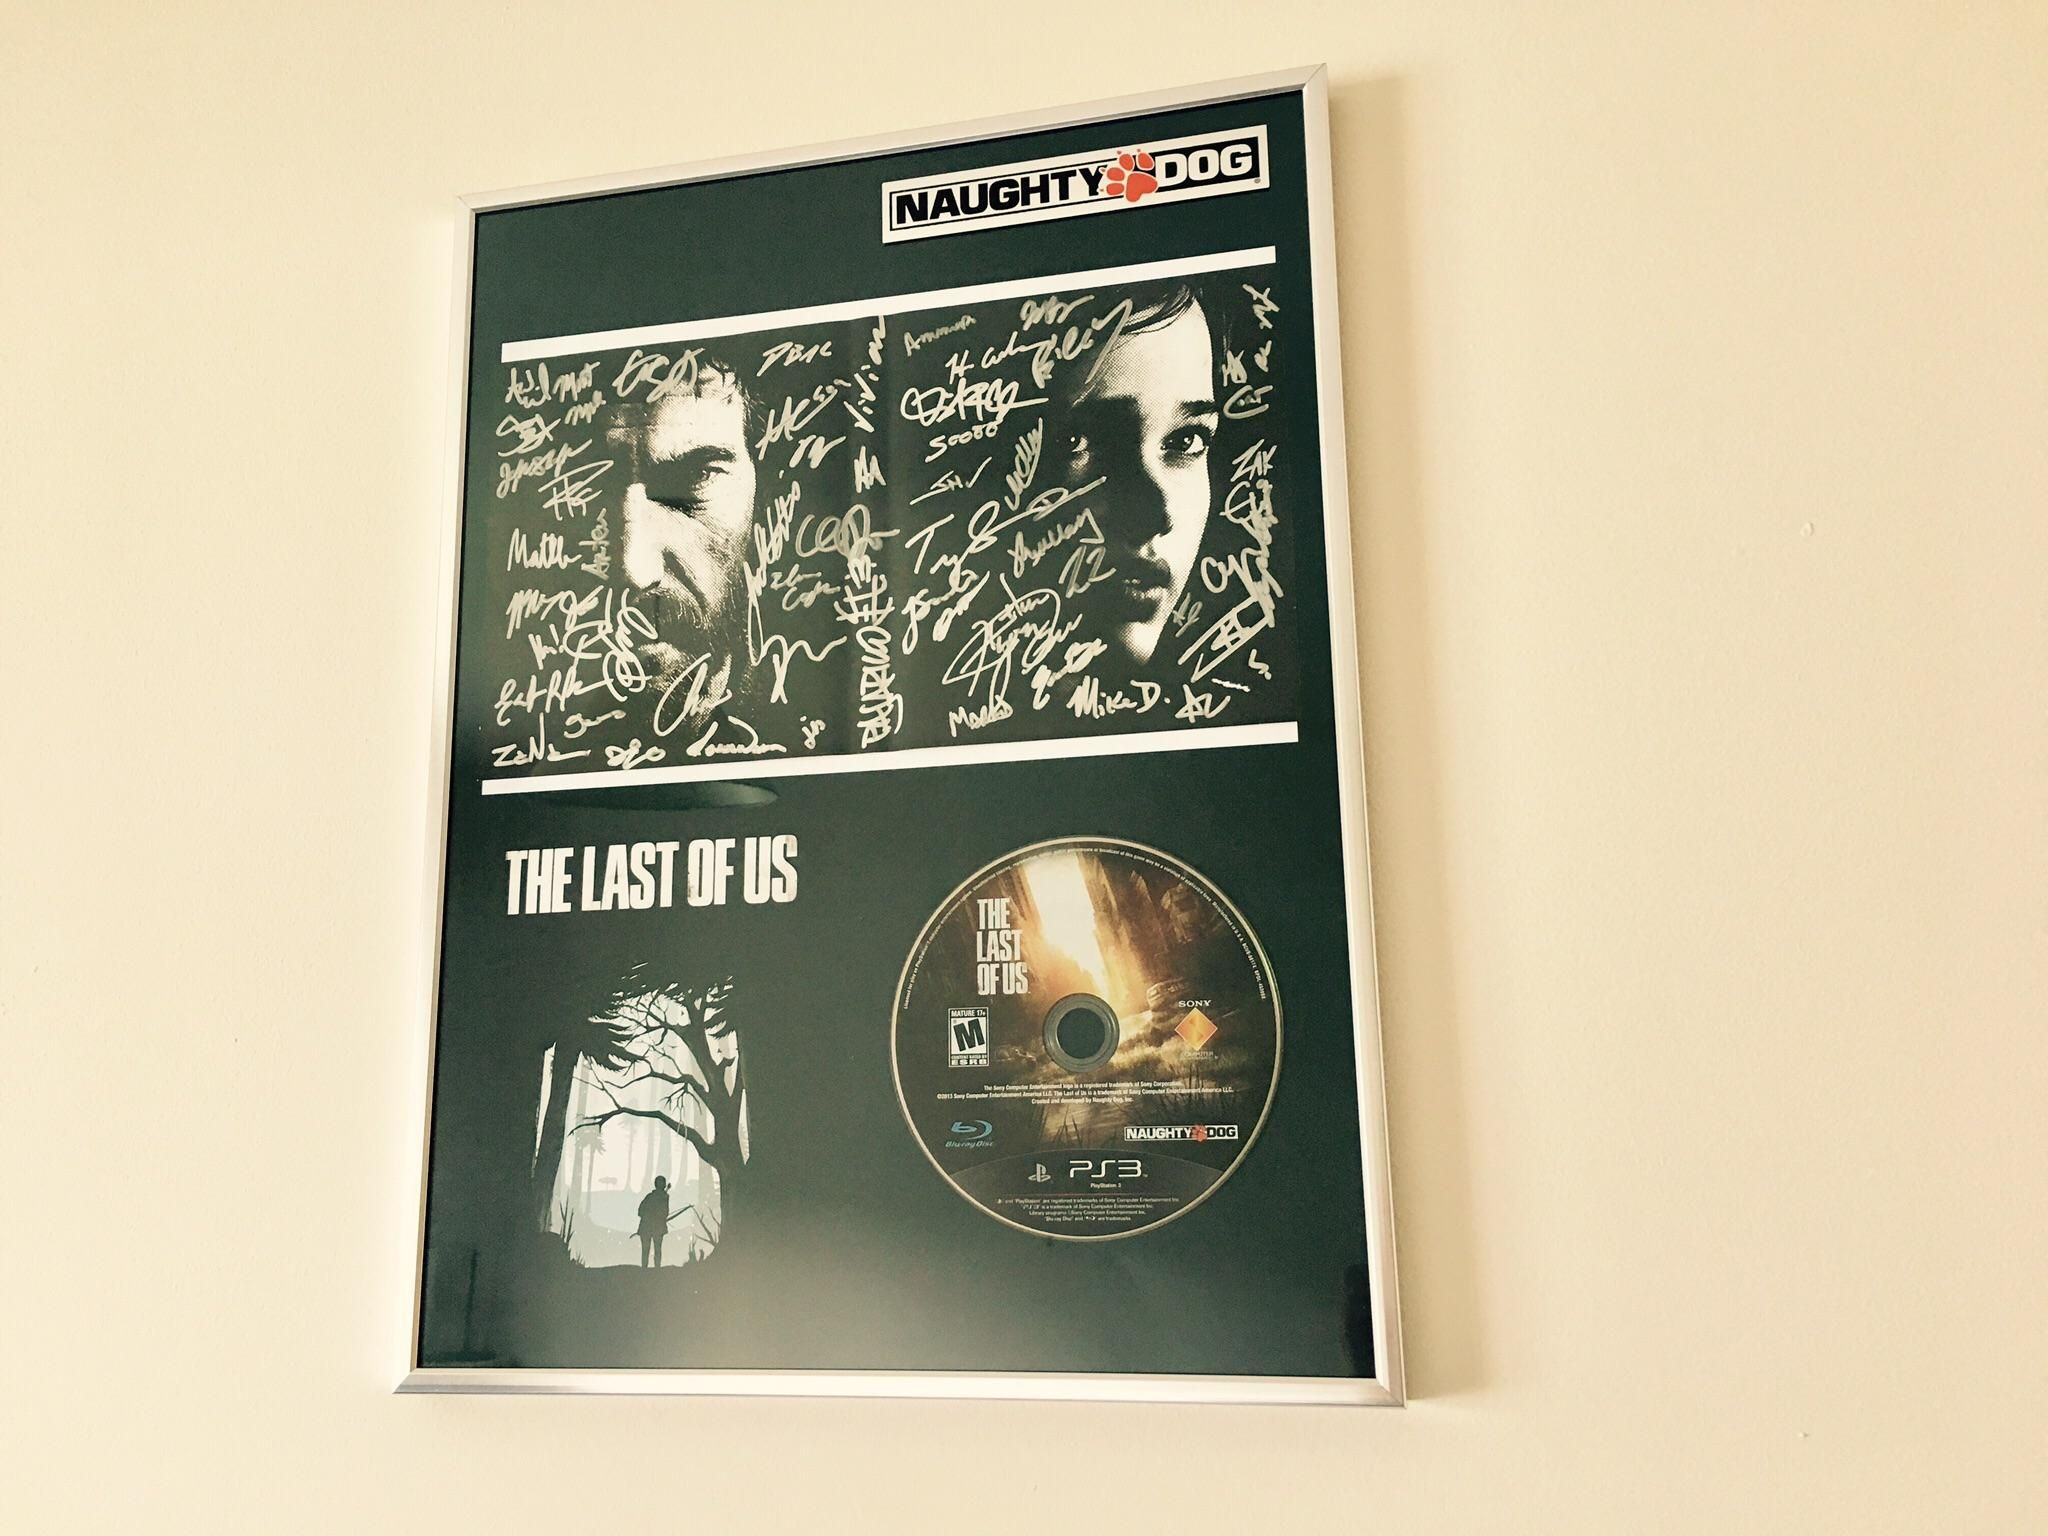 I framed my signed copy of the last of us httpifttt